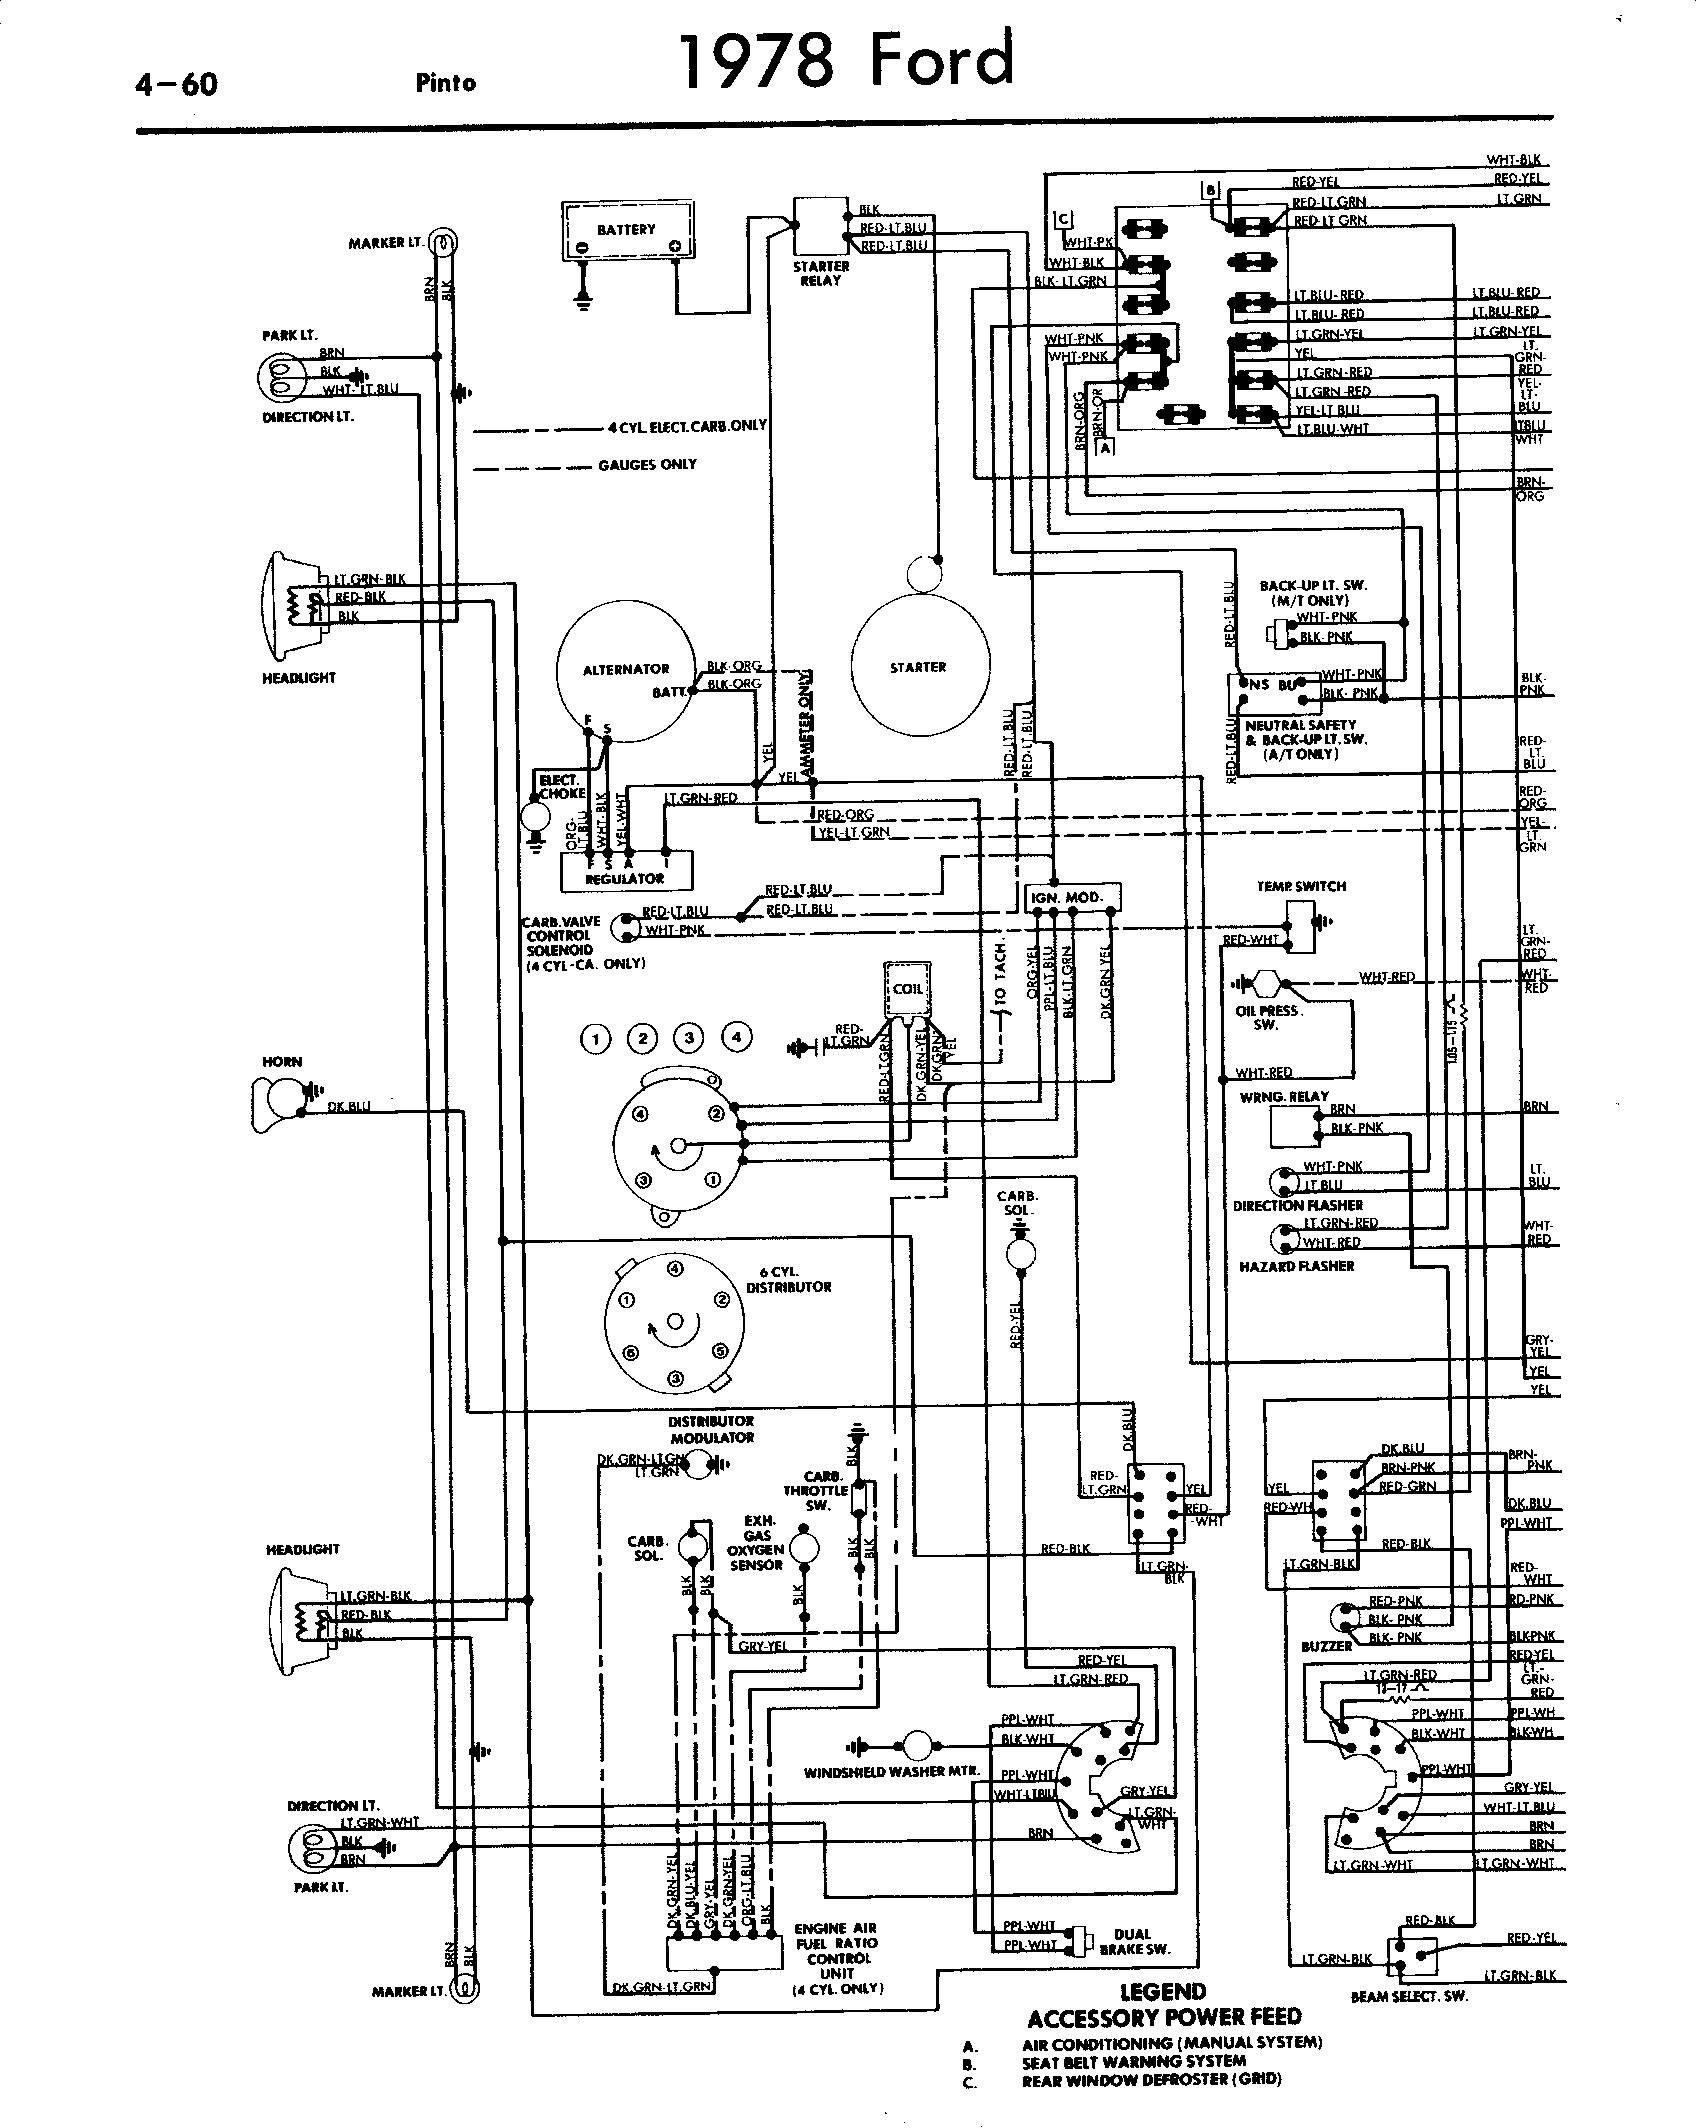 1978 F150 Engine Wiring Diagrams Trusted Diagram 1994 Ford Pinto Data Rh Unroutine Co Lighting